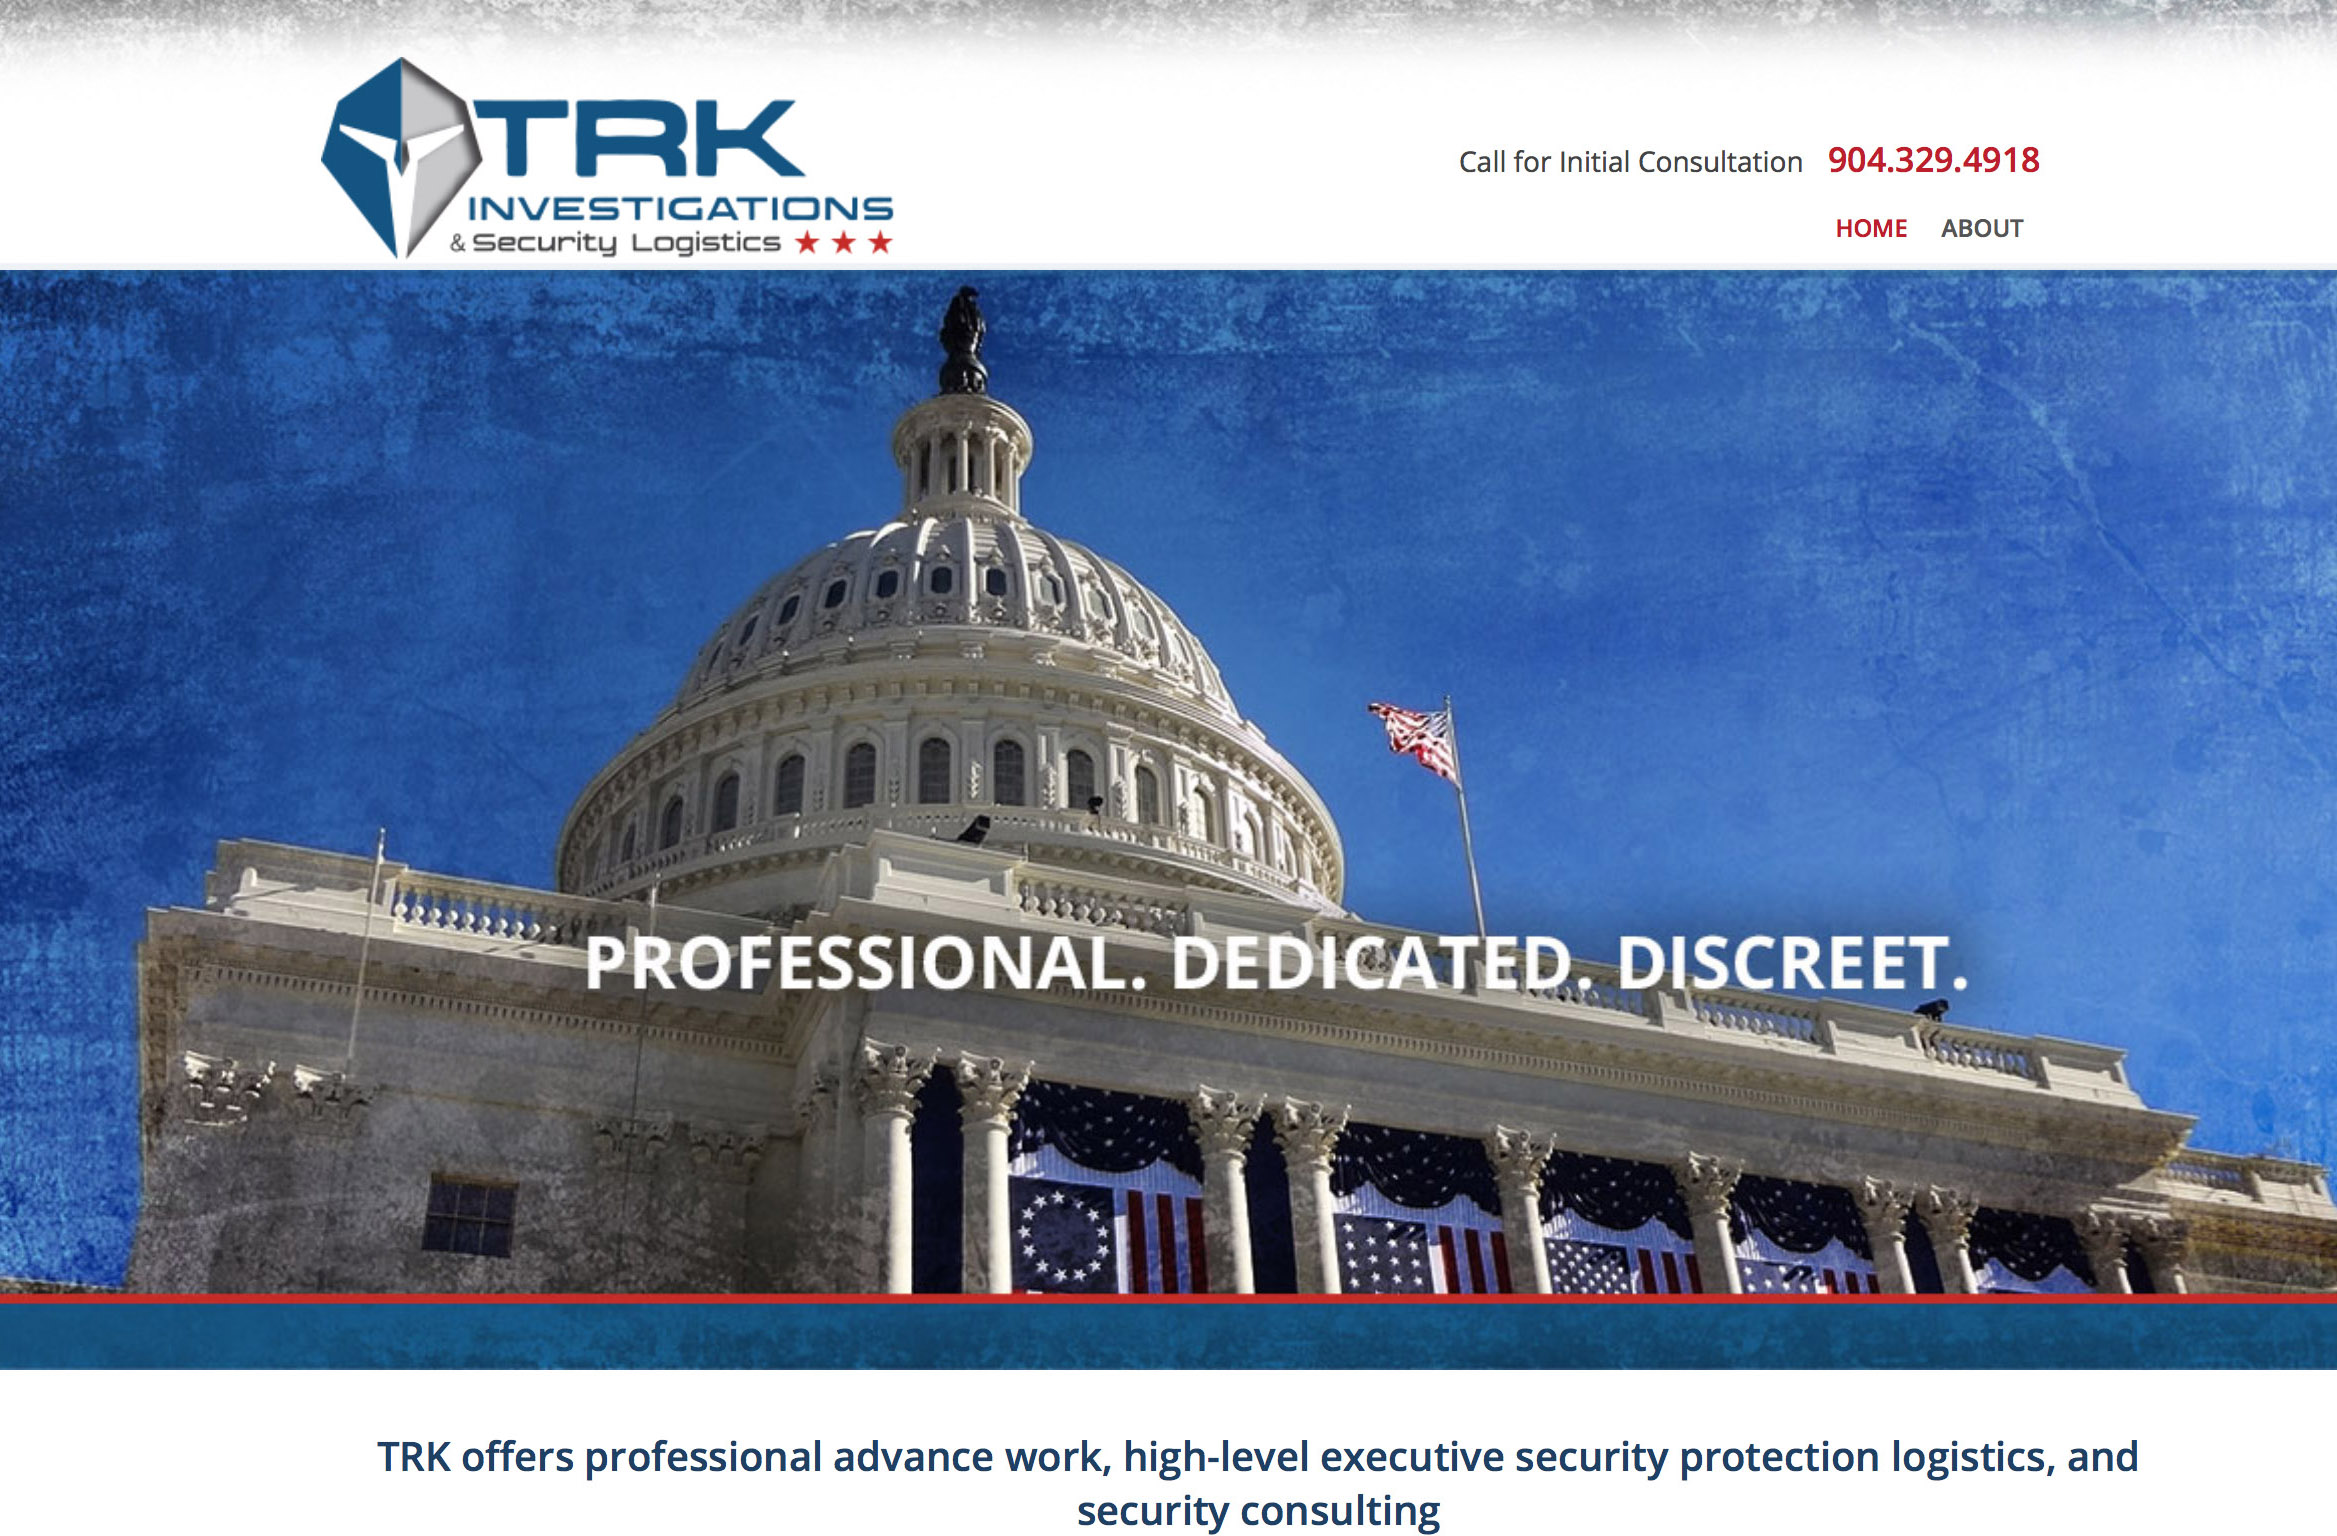 TRK investigations website design jacksonville 2